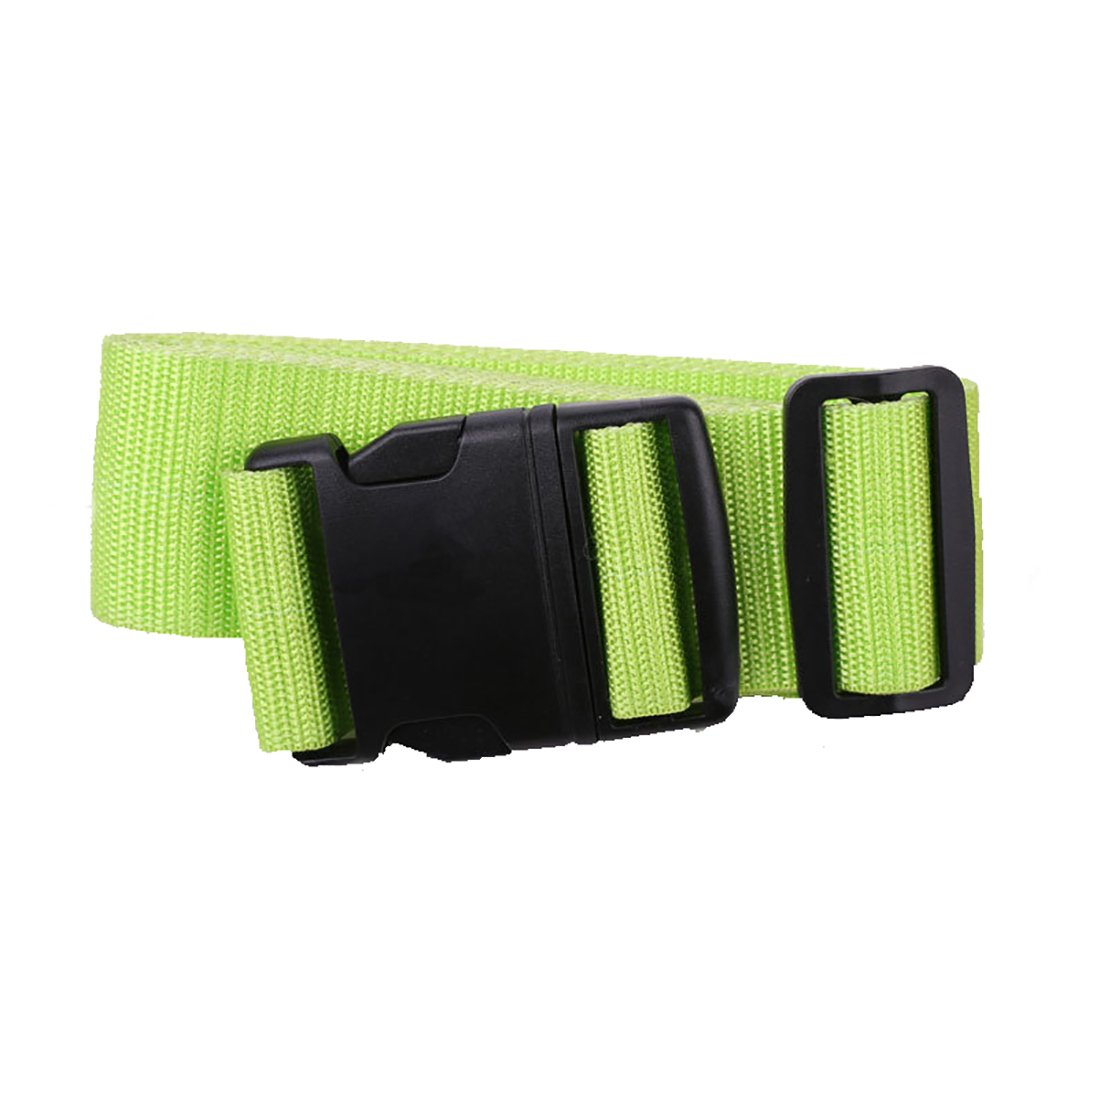 Flyshop 2 Pack Green Luggage Strap Suitcase Belt Travel Accessories